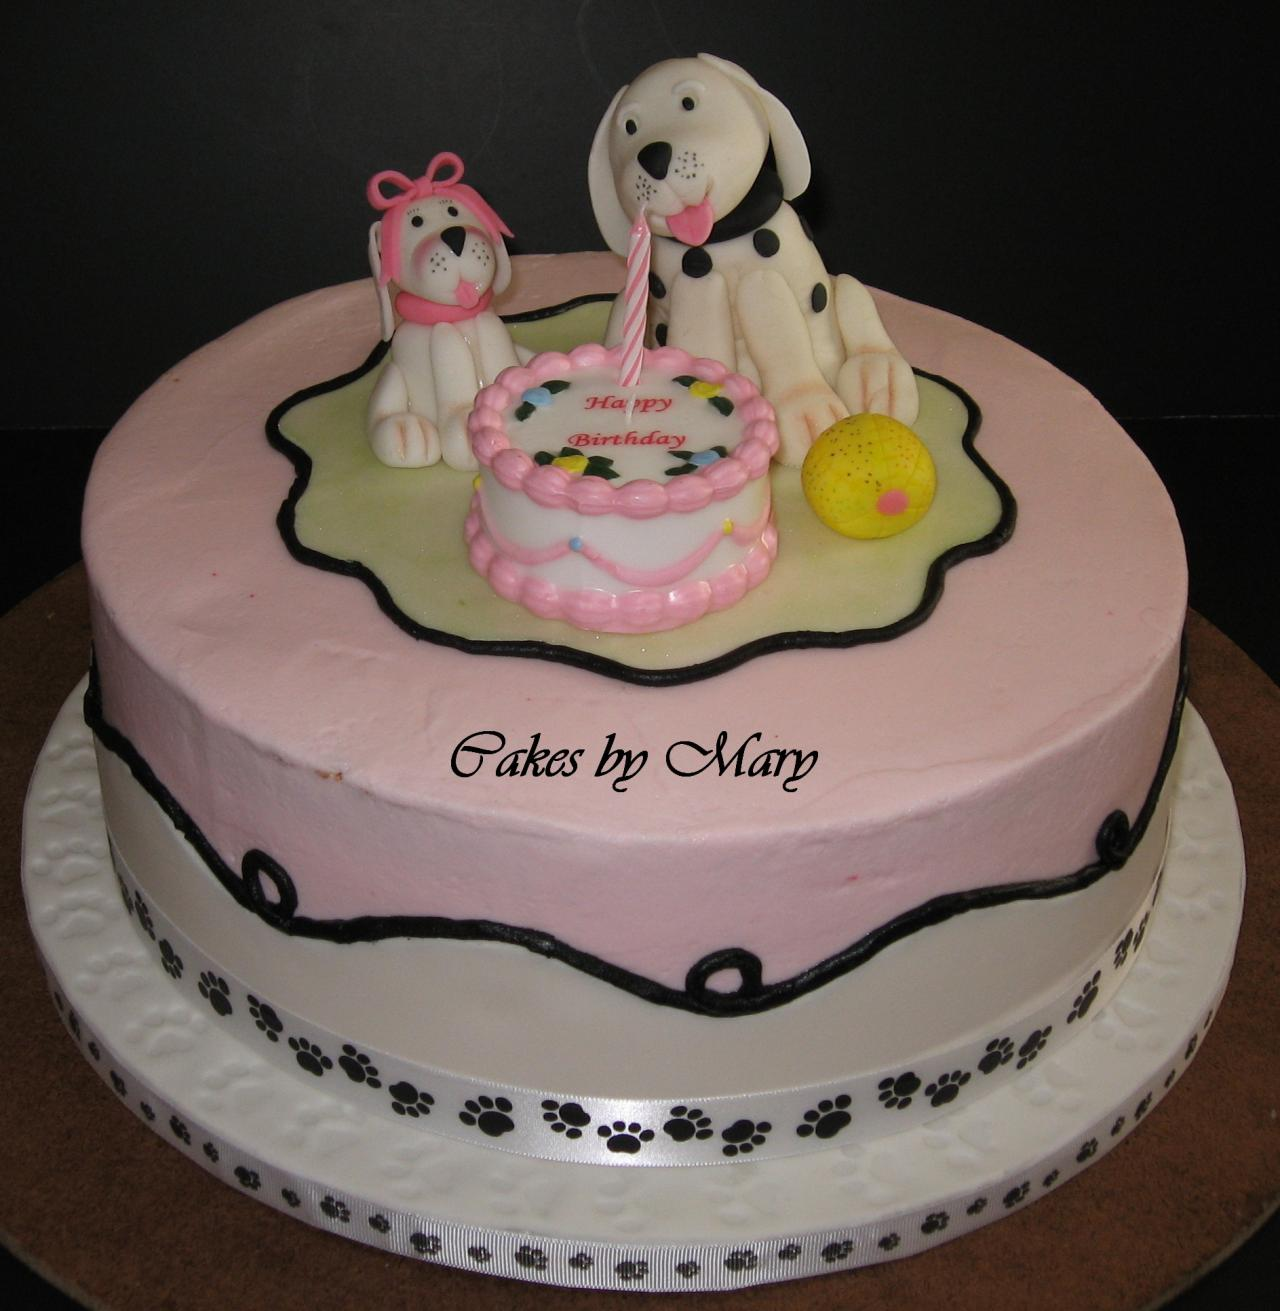 Pictures of birthday cake designs